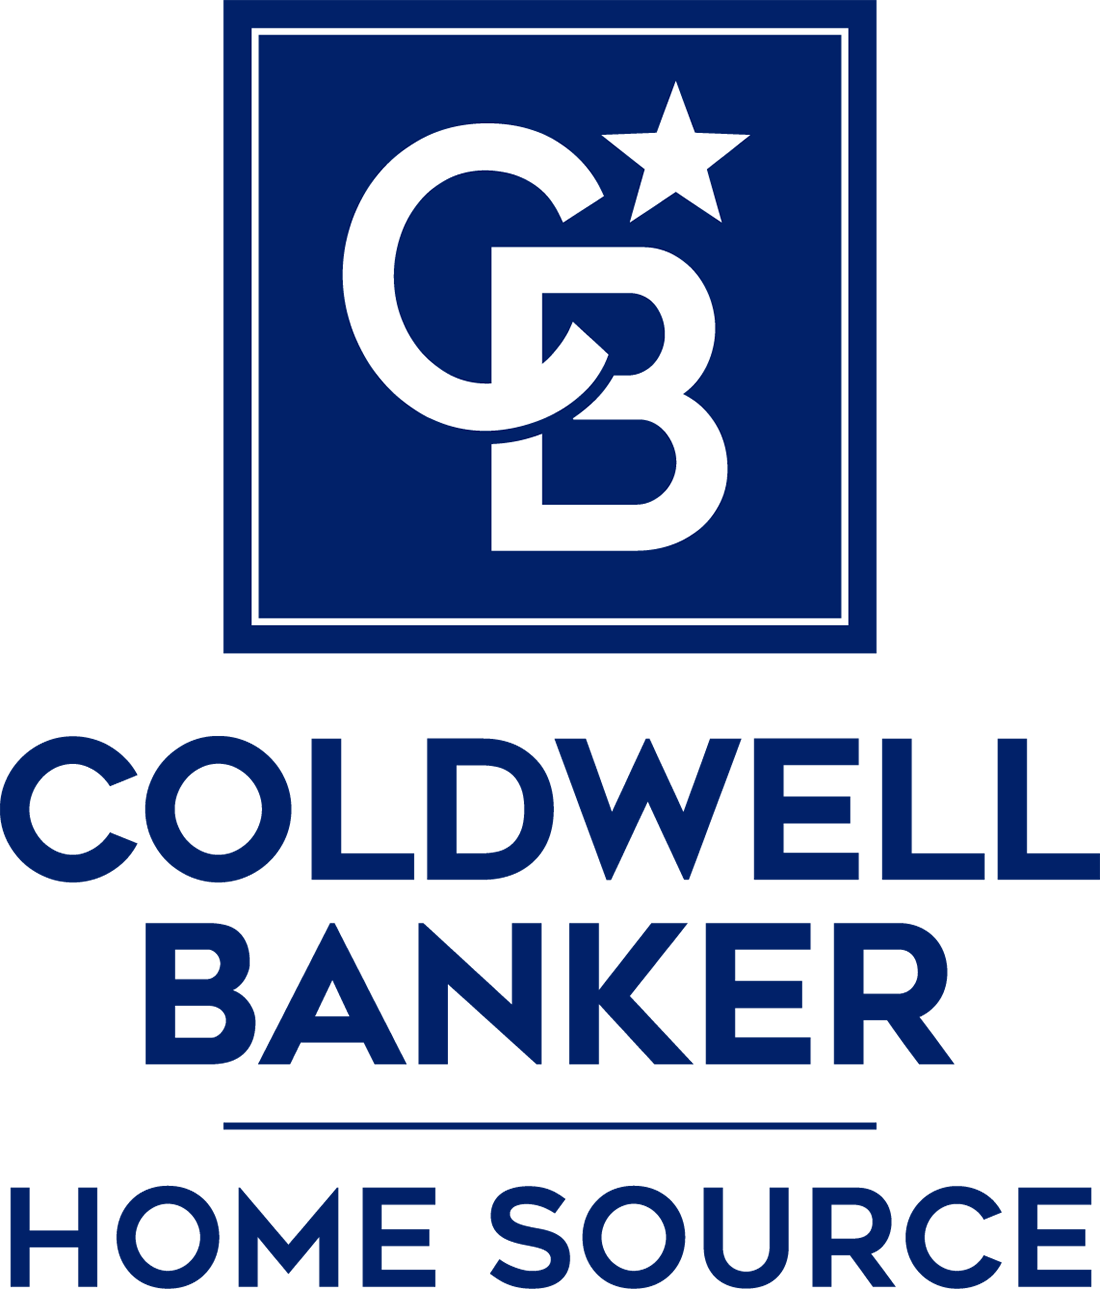 Ralph Ribera - Coldwell Banker Home Source Logo